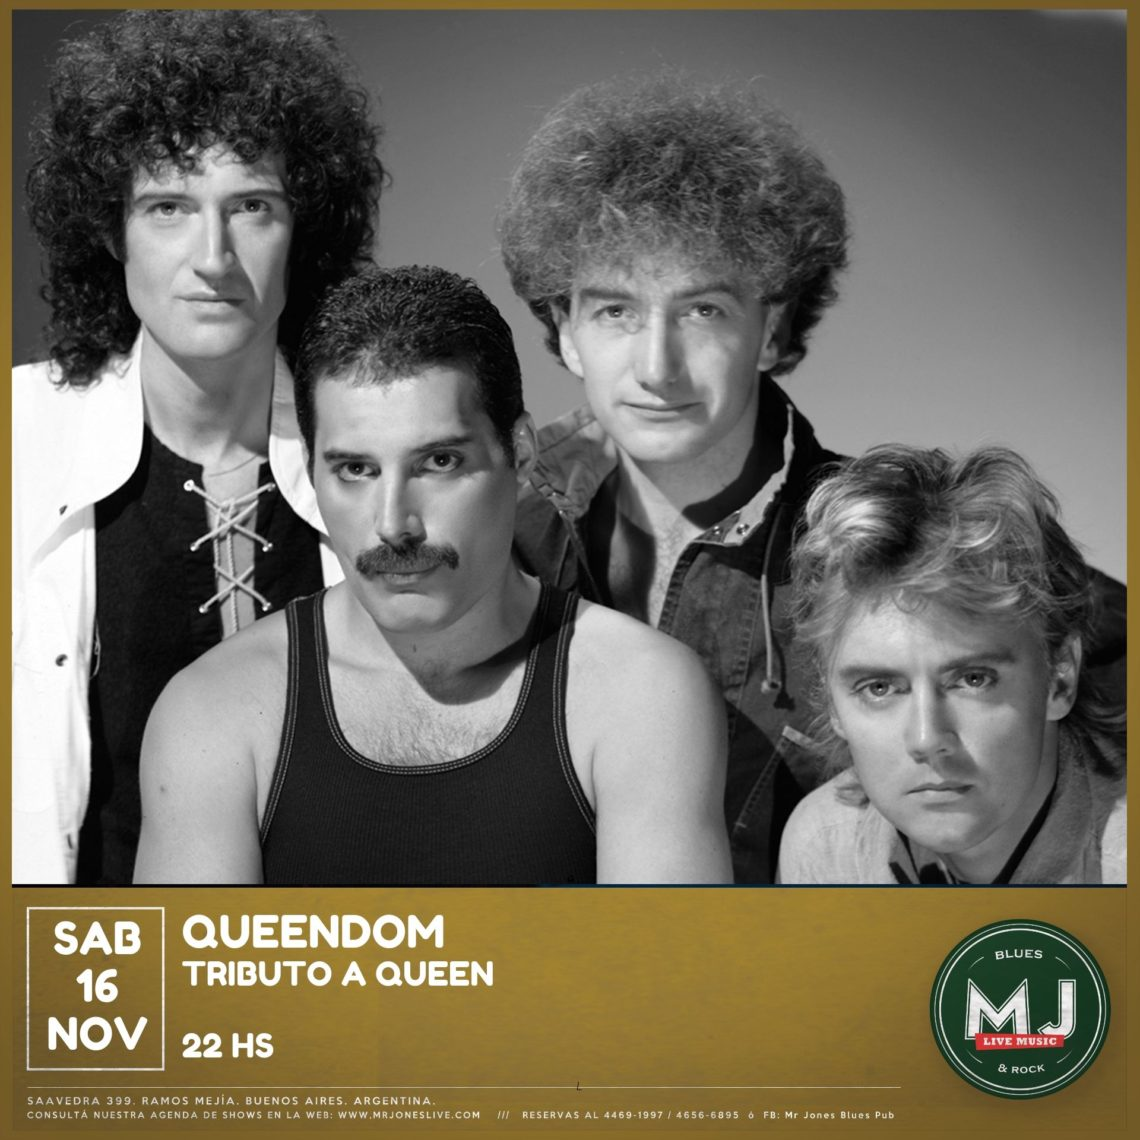 Queendom  tributo a Queen